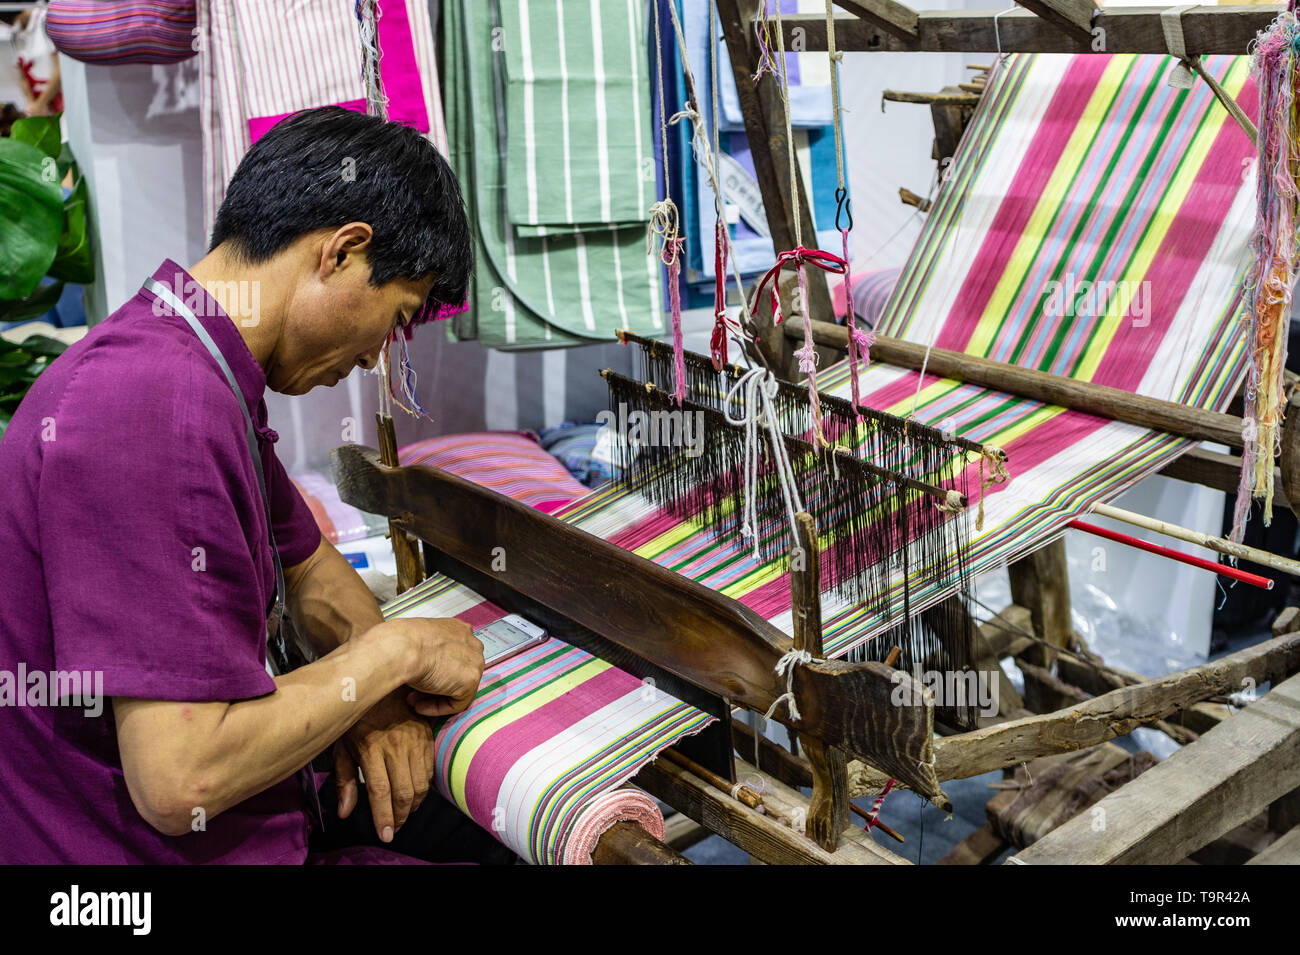 Man using smartphone on antique weaving loom - Stock Image